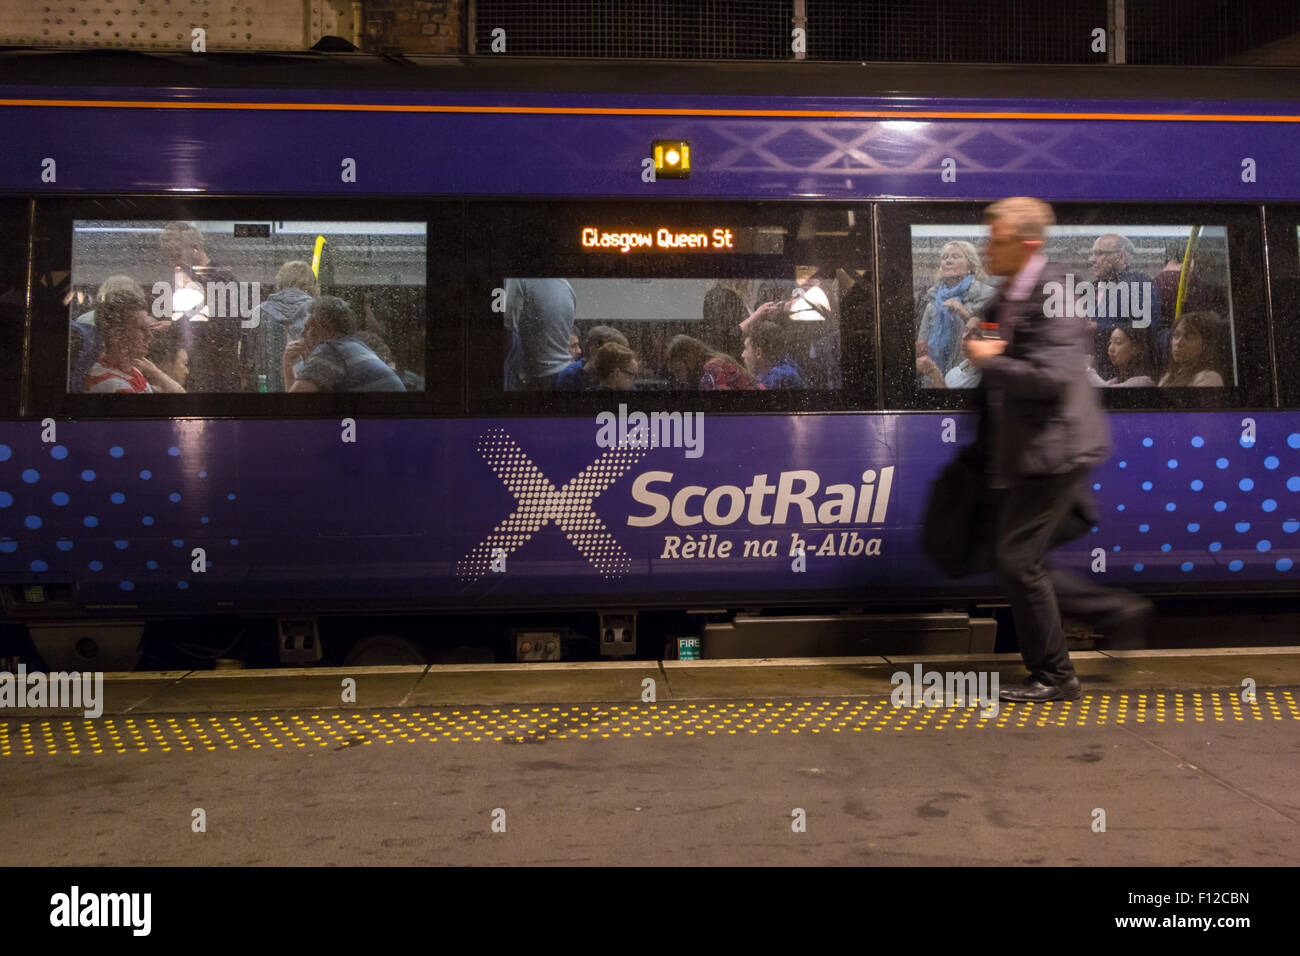 Gaelic branding on ScotRail train travelling between Edinburgh Waverley and Glasgow Queen Street stations - Stock Image